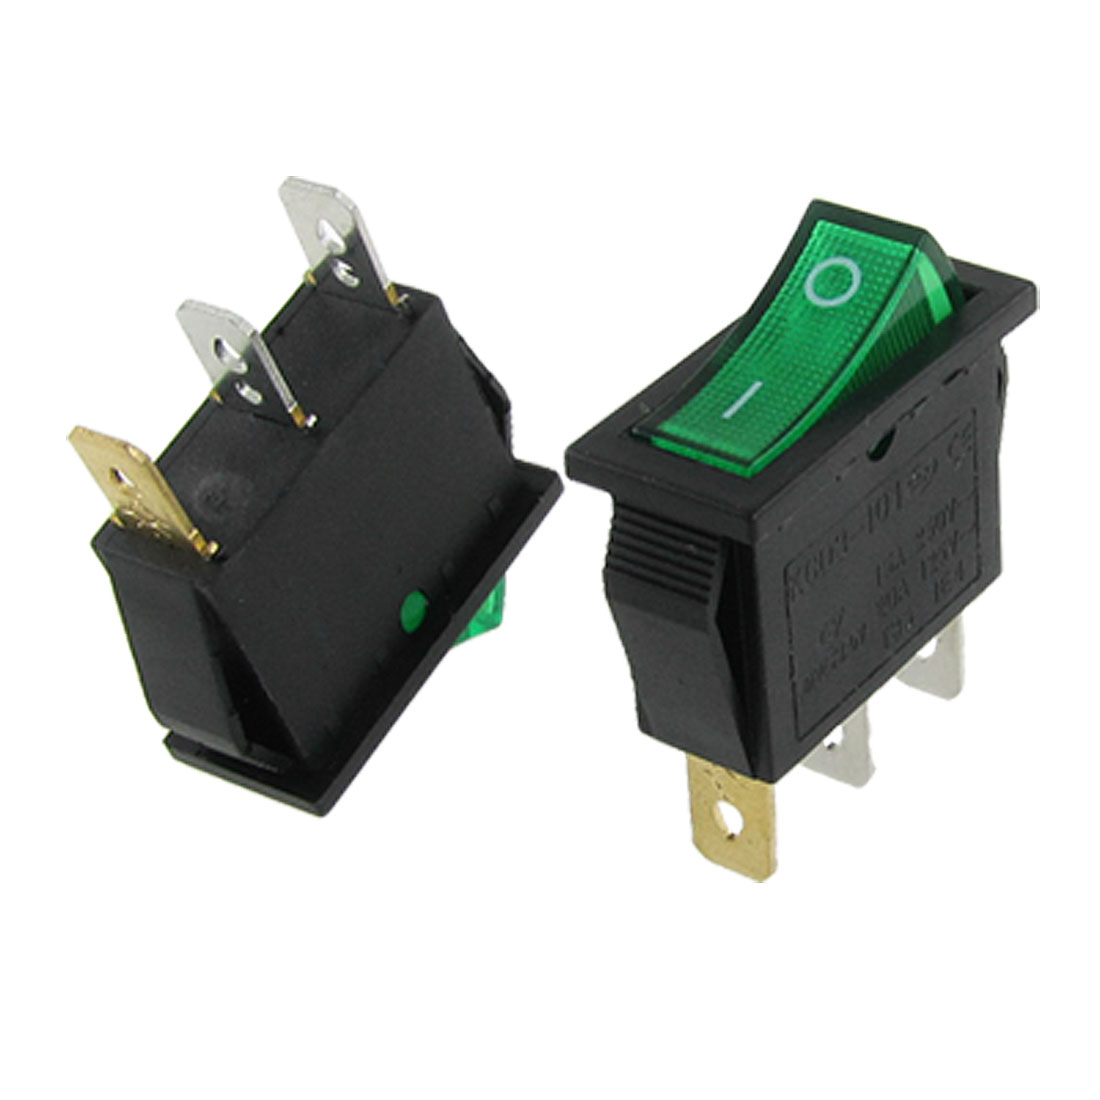 Green Light Illuminated ON-OFF 2 Position SPST Boat Rocker Switch 3 Pin x 2 Pcs